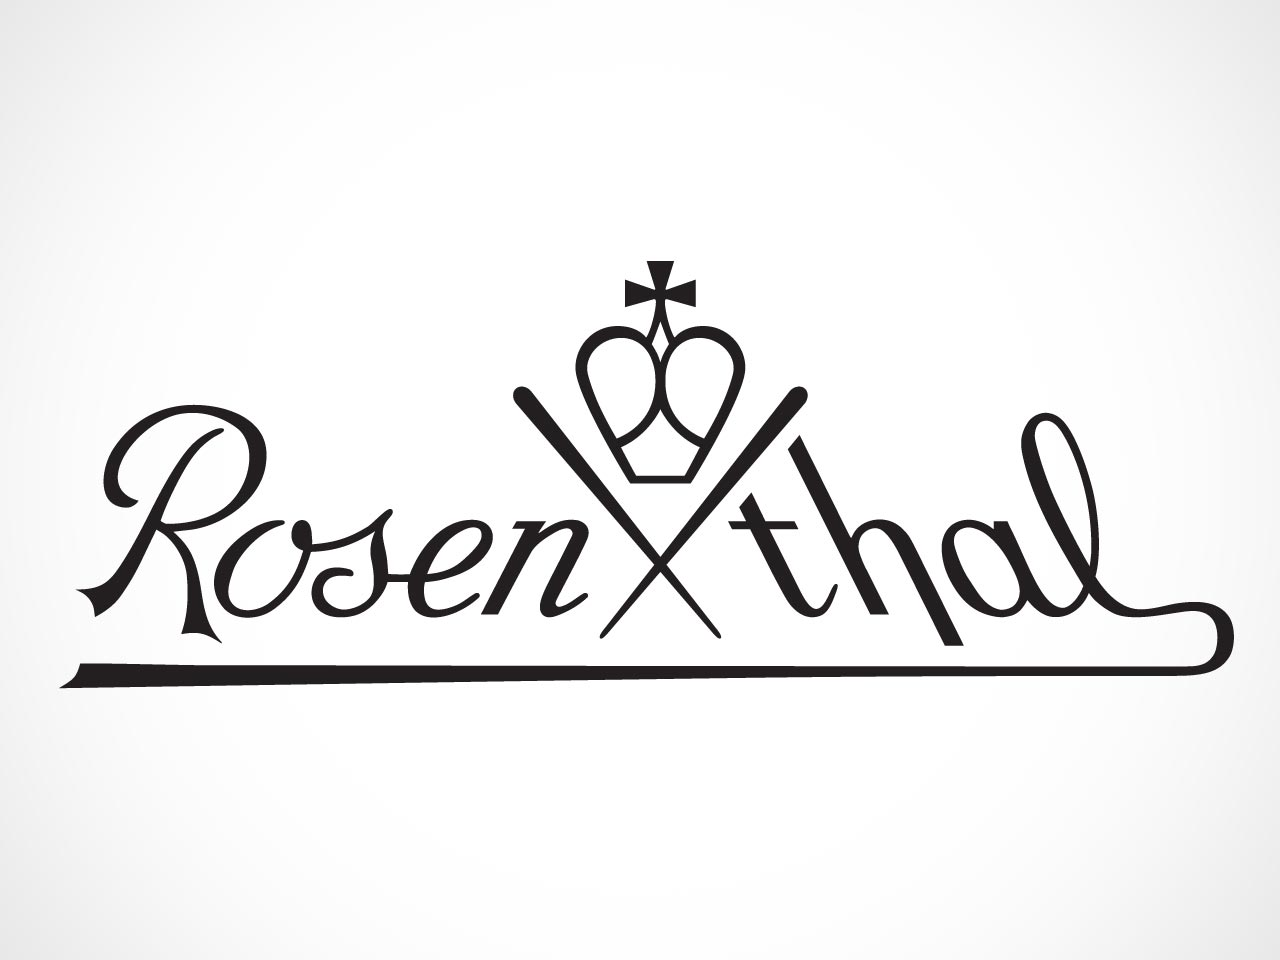 Rosenthal Logo on white background.